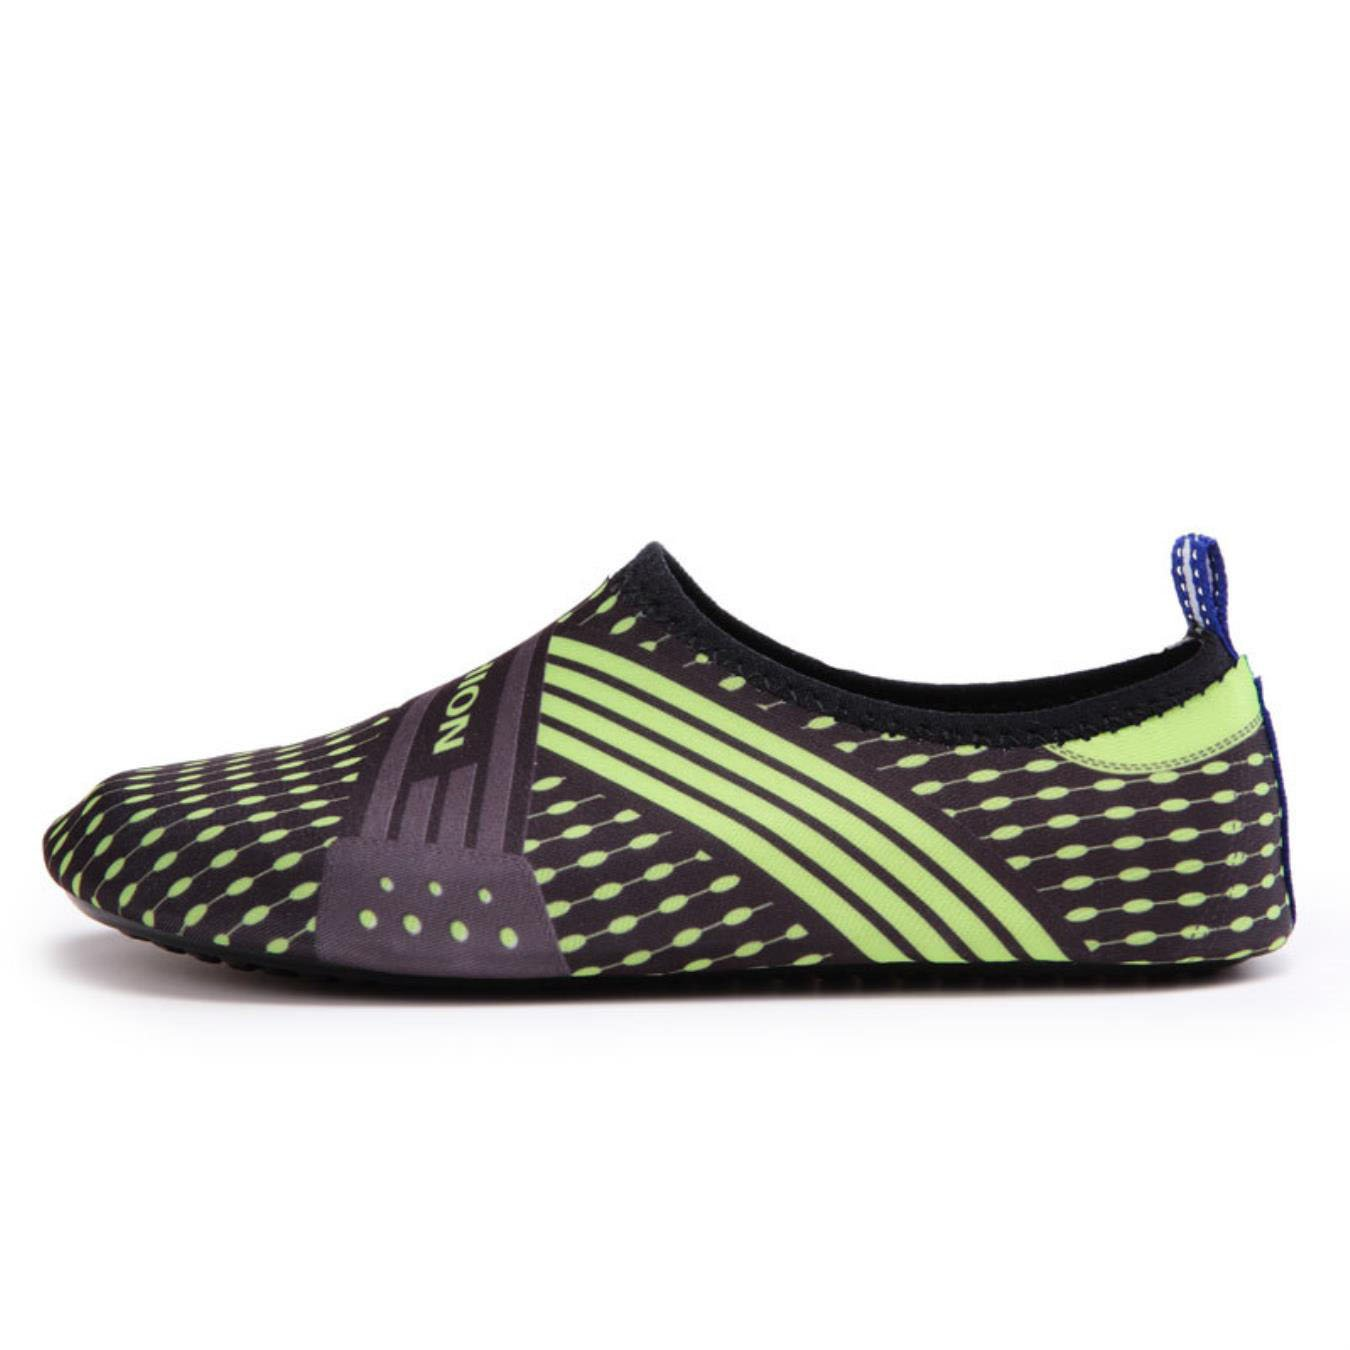 185a11e3de46 Amazon.com  Water Shoes for Women Men Quickly-Dry Beach Shoes Summer  Sneakers Comfortable Seaside Adult Swimming Soft Shoe  Clothing